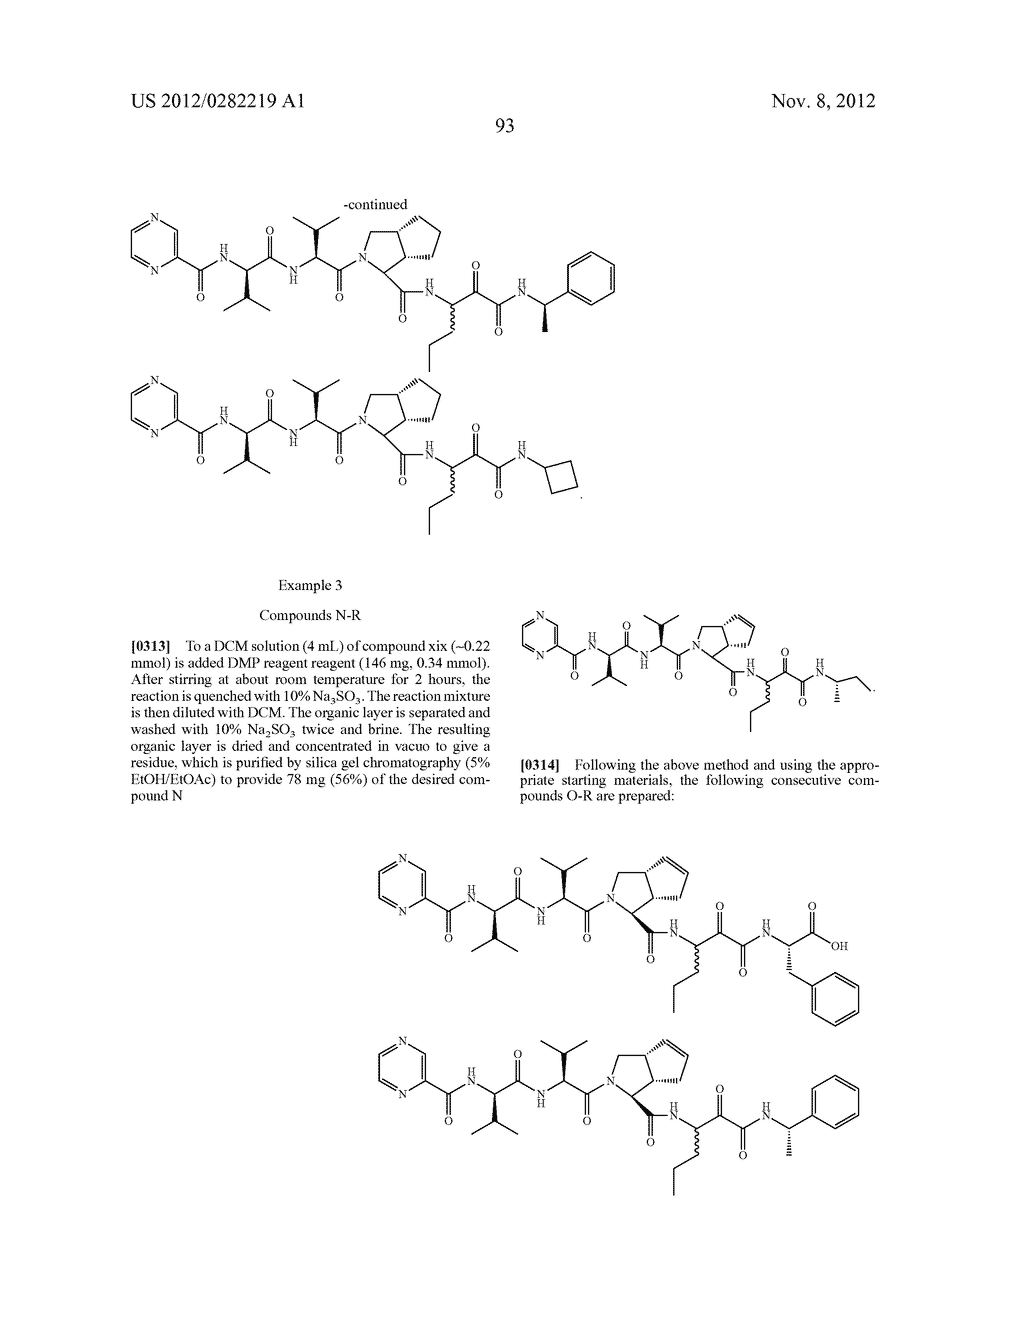 PEPTIDOMIMETIC PROTEASE INHIBITORS - diagram, schematic, and image 108